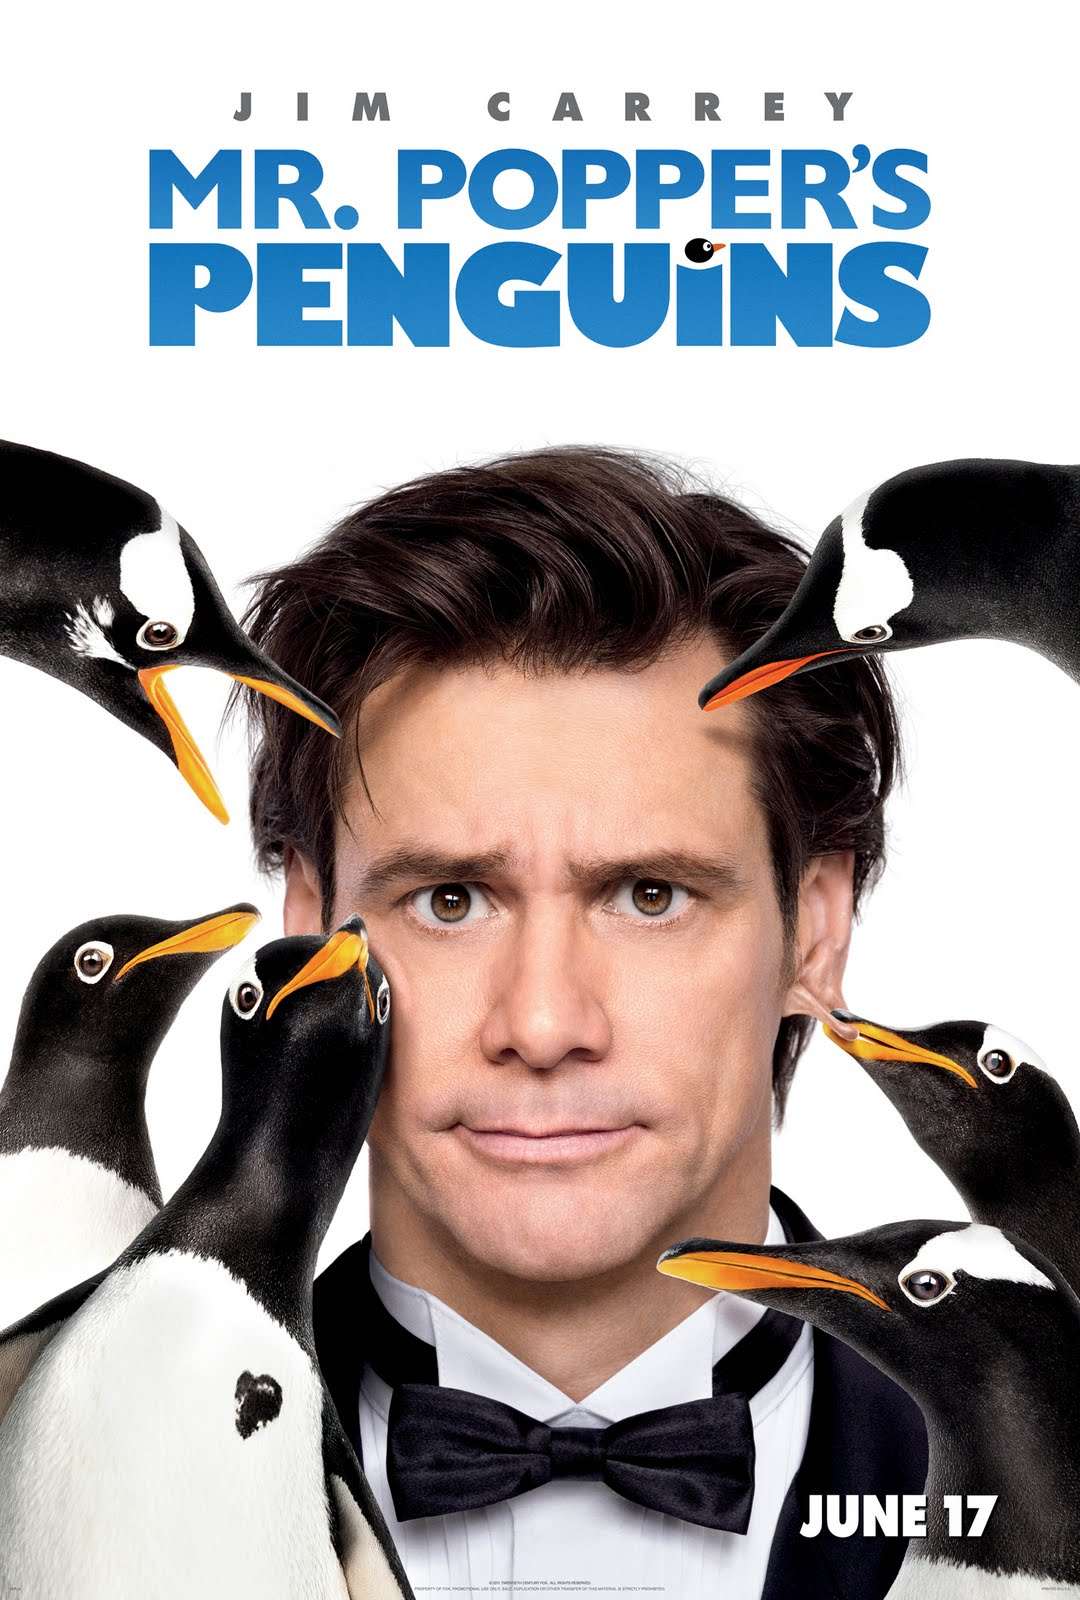 http://4.bp.blogspot.com/-BFgiA8errK0/TeZivbkZevI/AAAAAAAAOLw/Bn8Q9OJwseU/s1600/mr+poppers+penguins+movie+poster.jpg